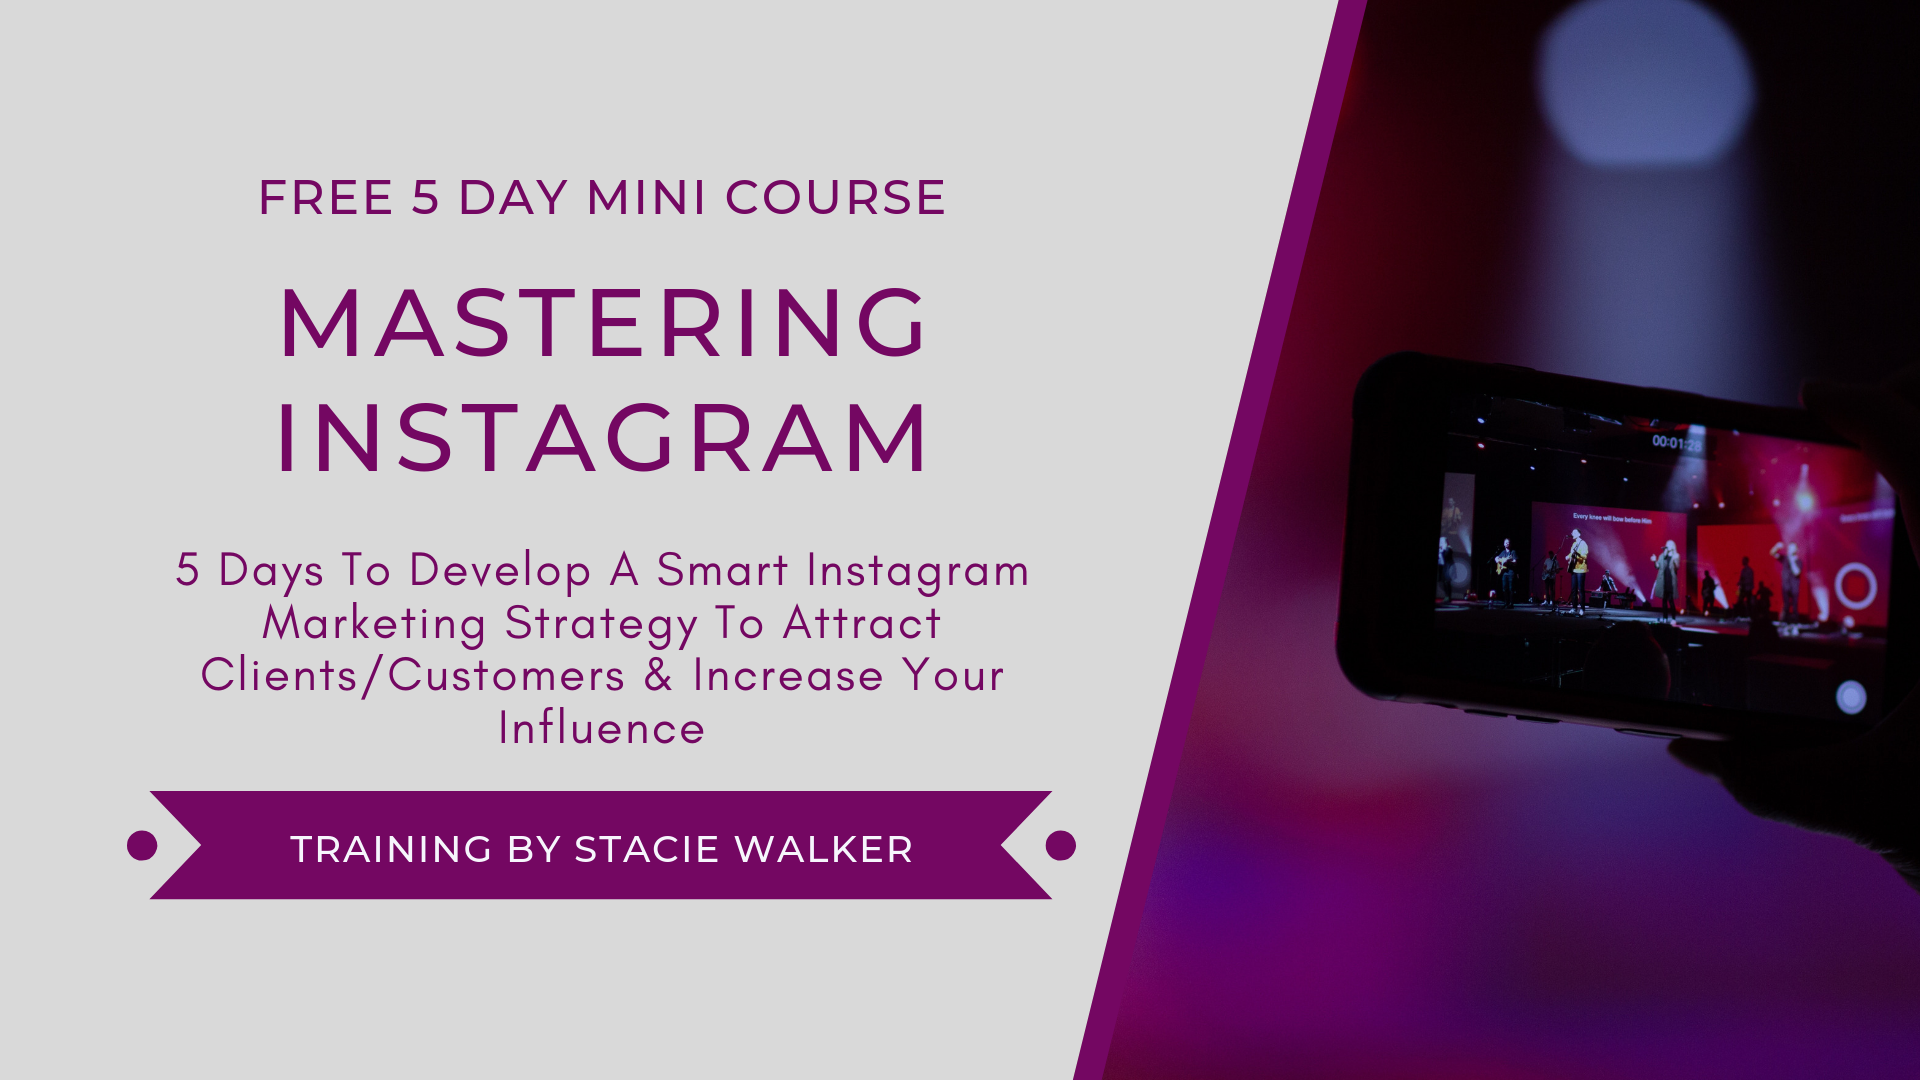 Mastering Instagram Course by Stacie Walker Blog Image.png